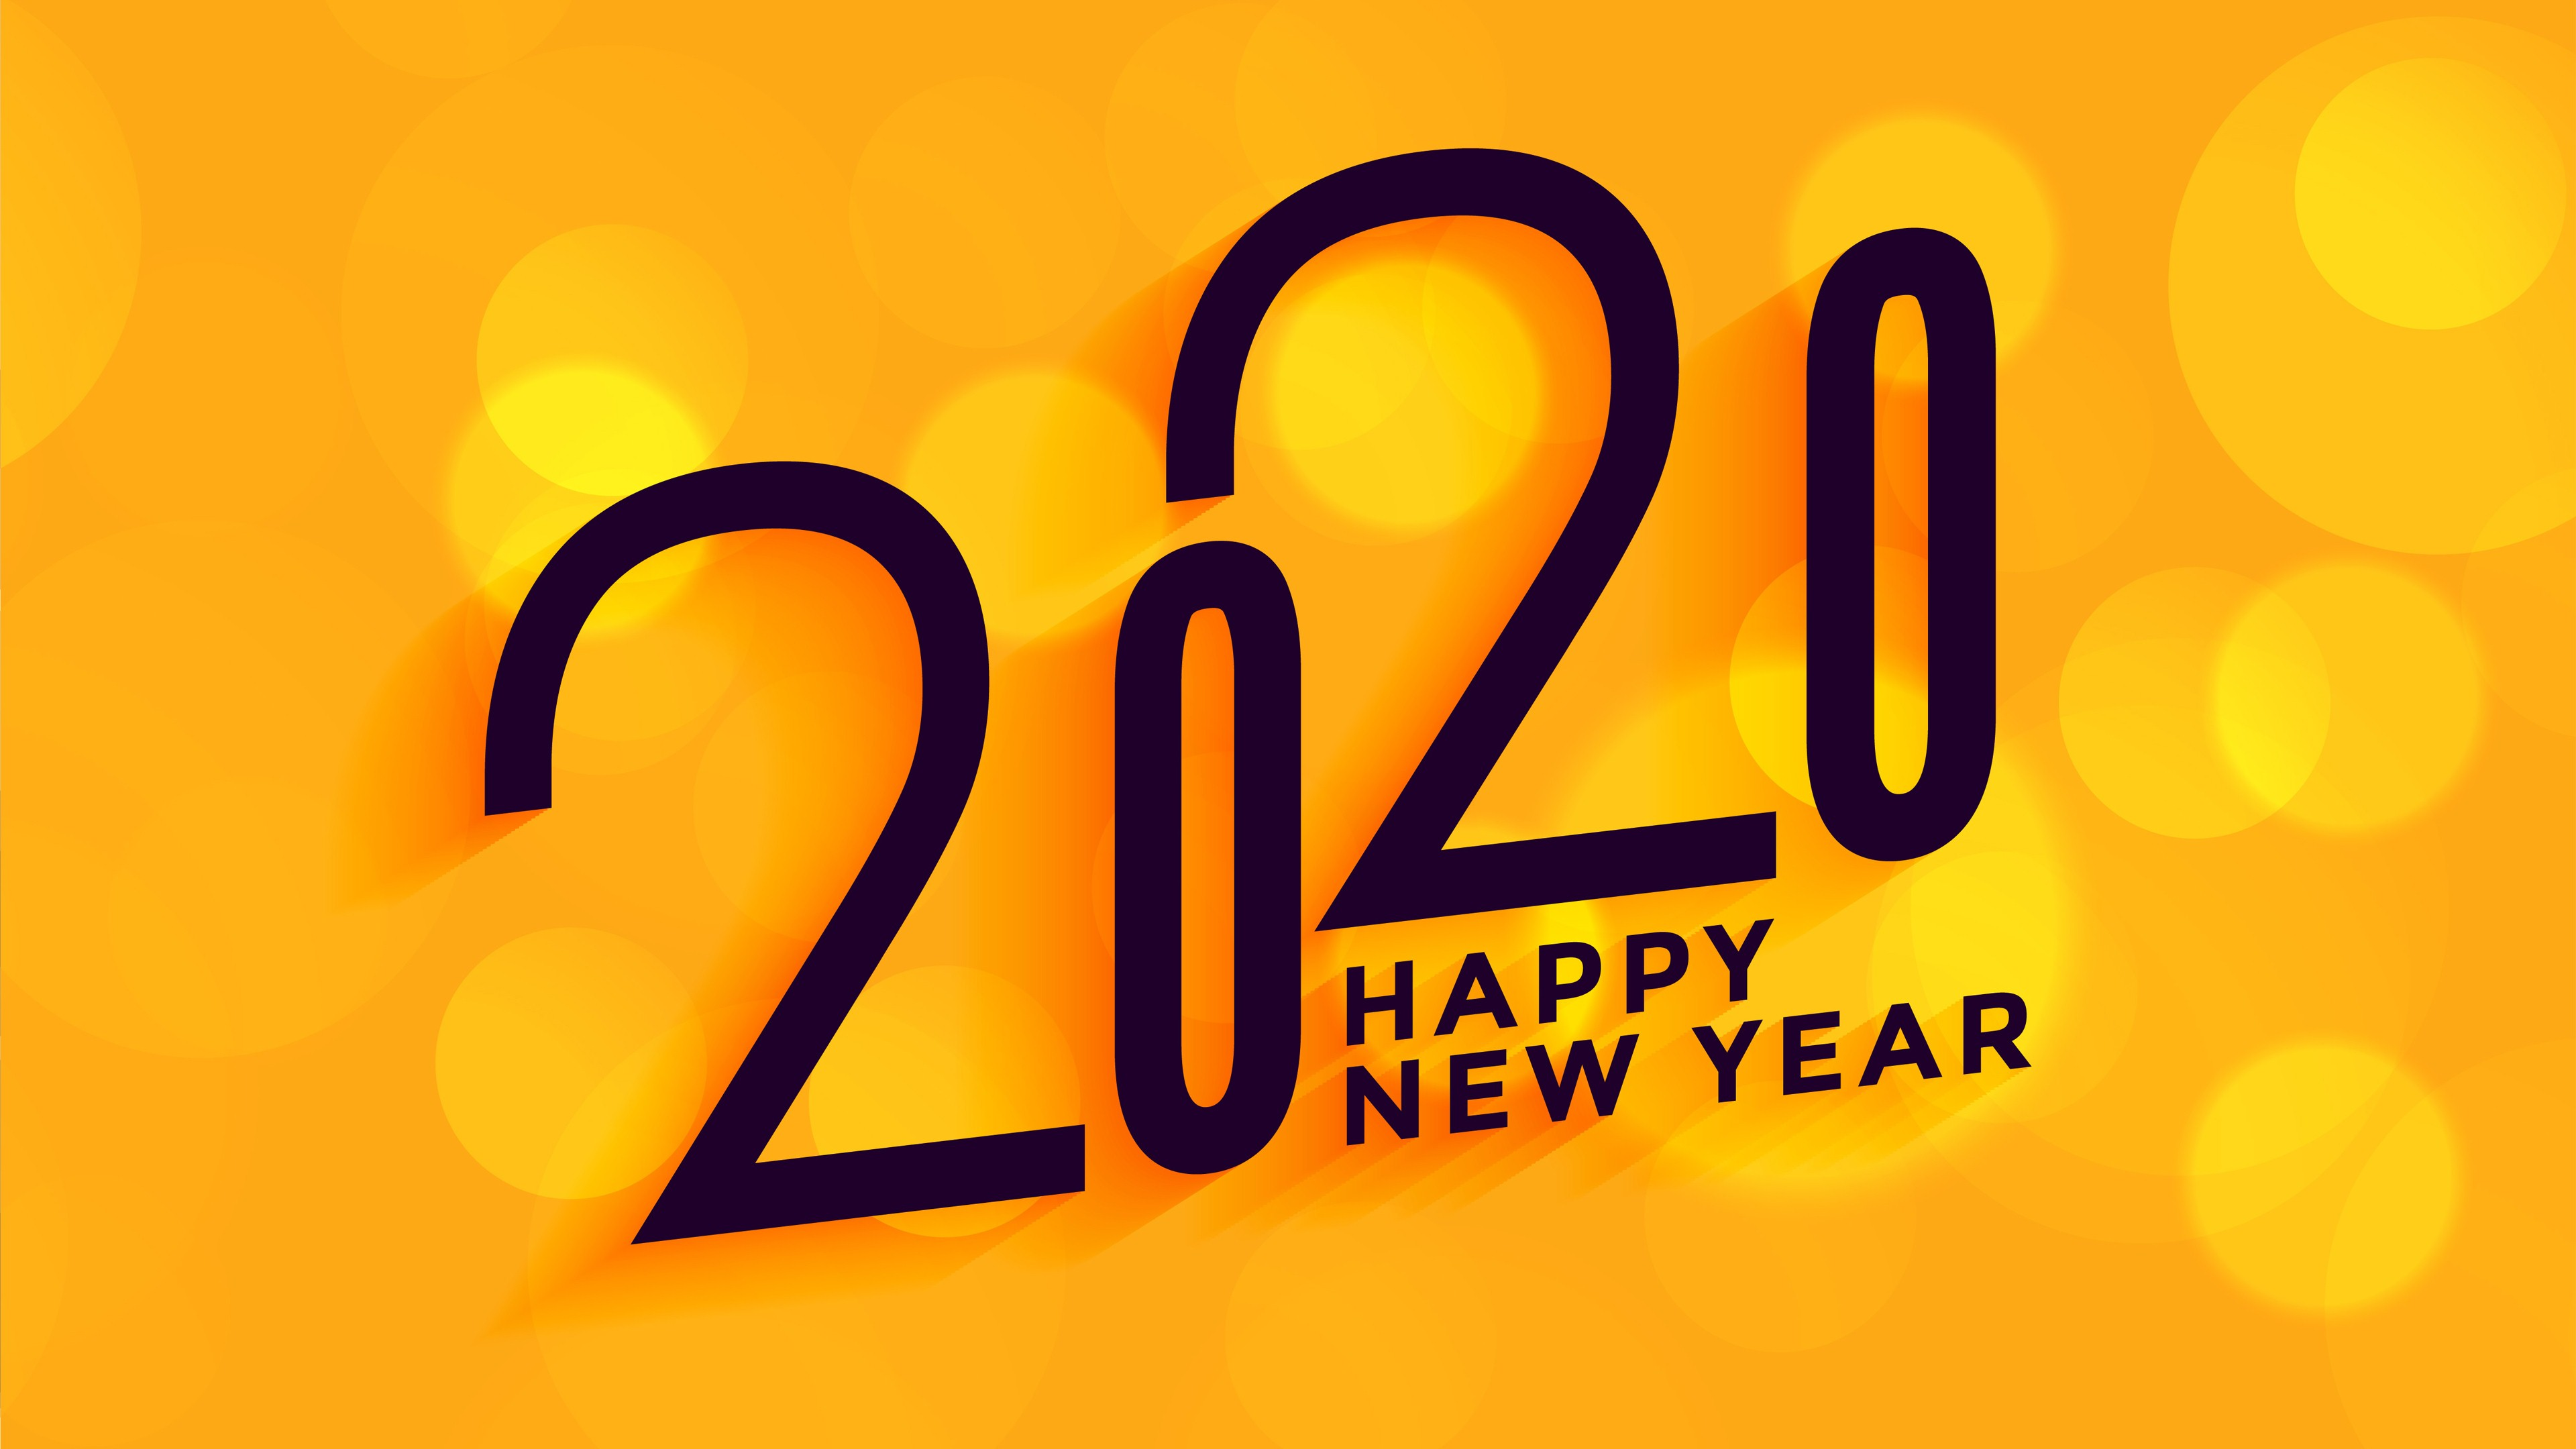 2020 Happy New Year Yellow 4K Wallpaper HD Wallpapers 3840x2160